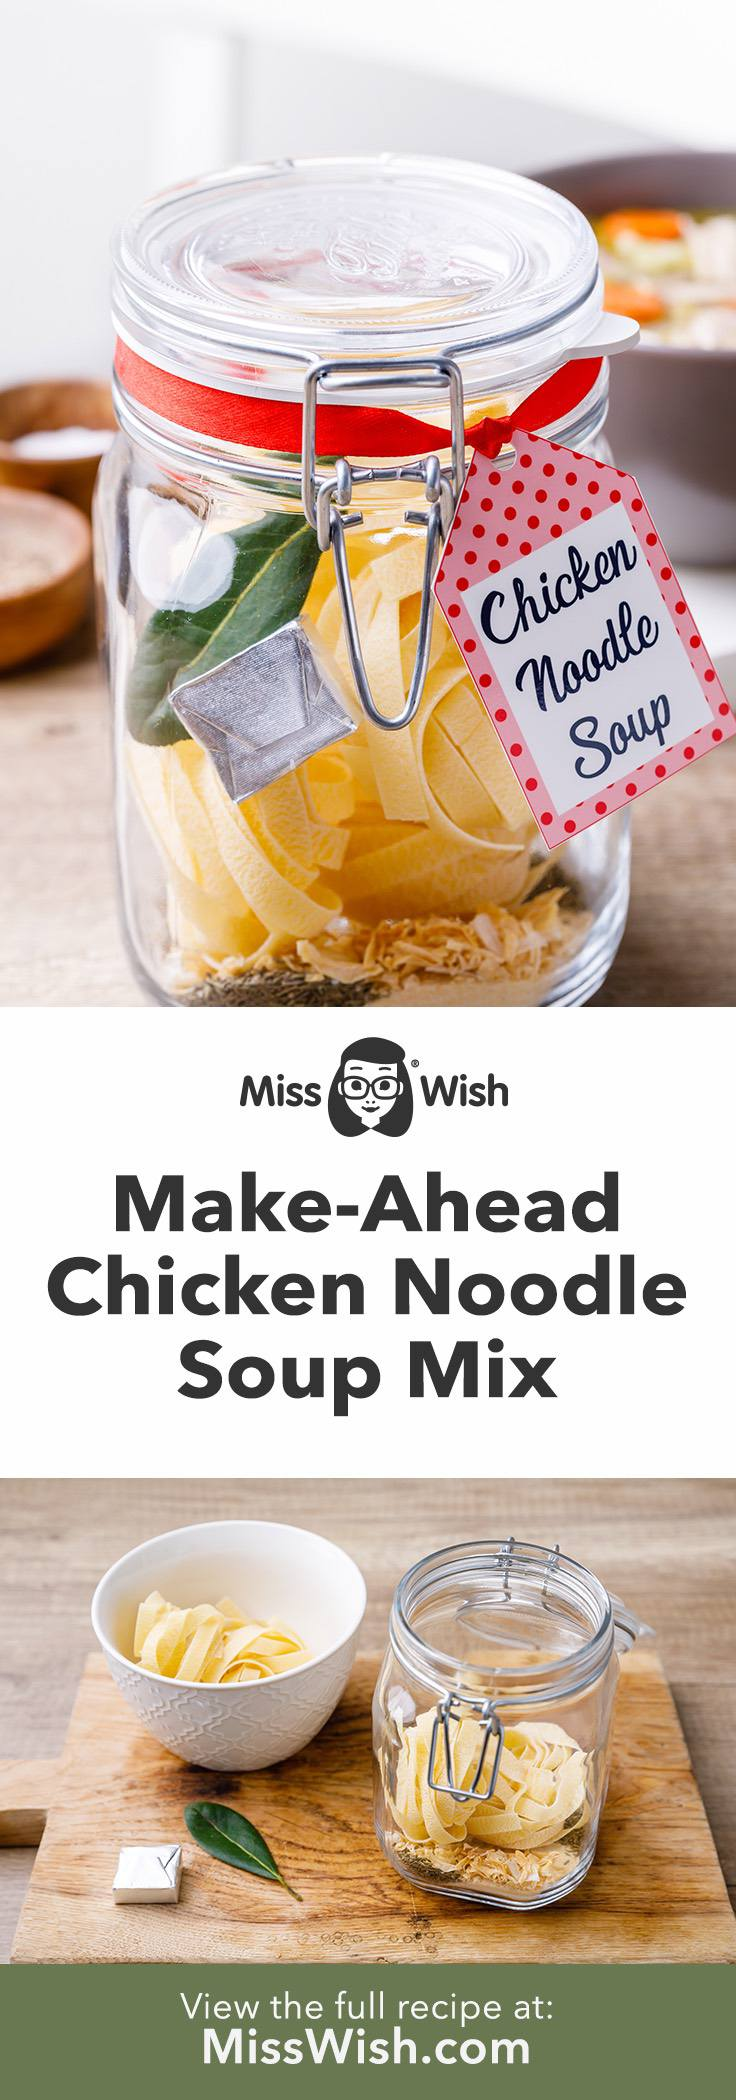 Make-Ahead Chicken Soup Mix in a Jar